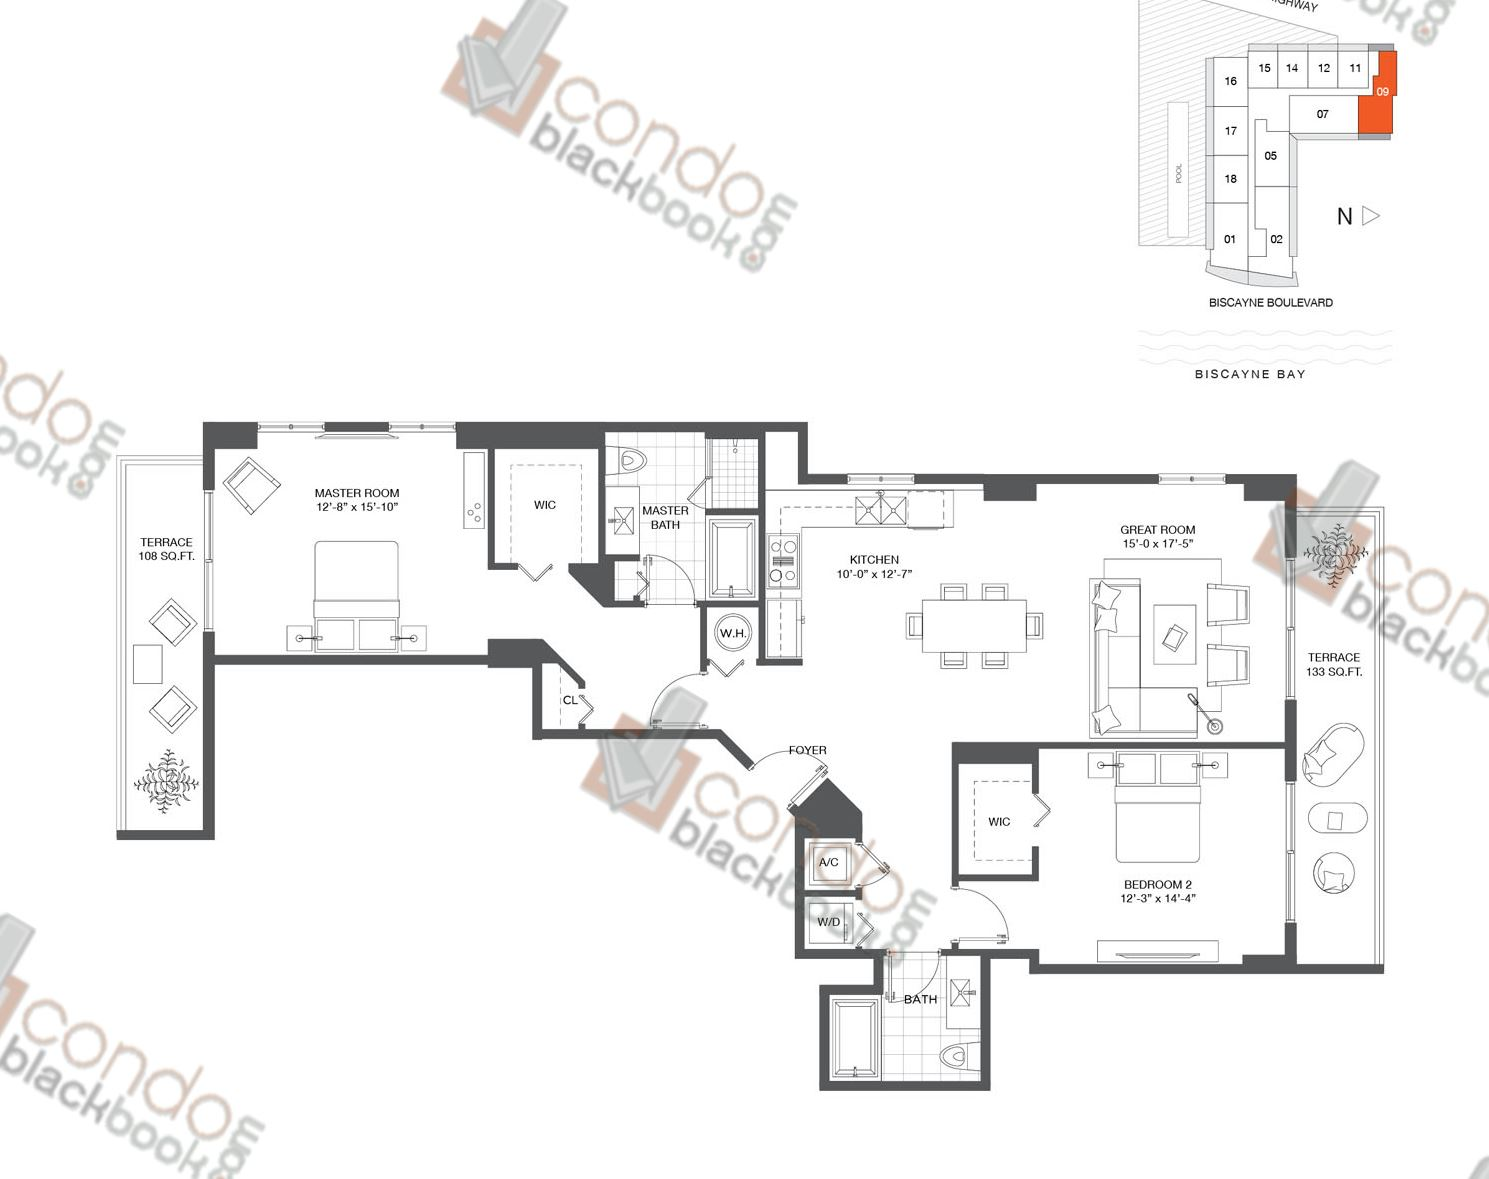 Floor plan for Baltus House Design District / Buena Vista Miami, model Residence 09, line 09, 1/1+DEN bedrooms, 800 sq ft